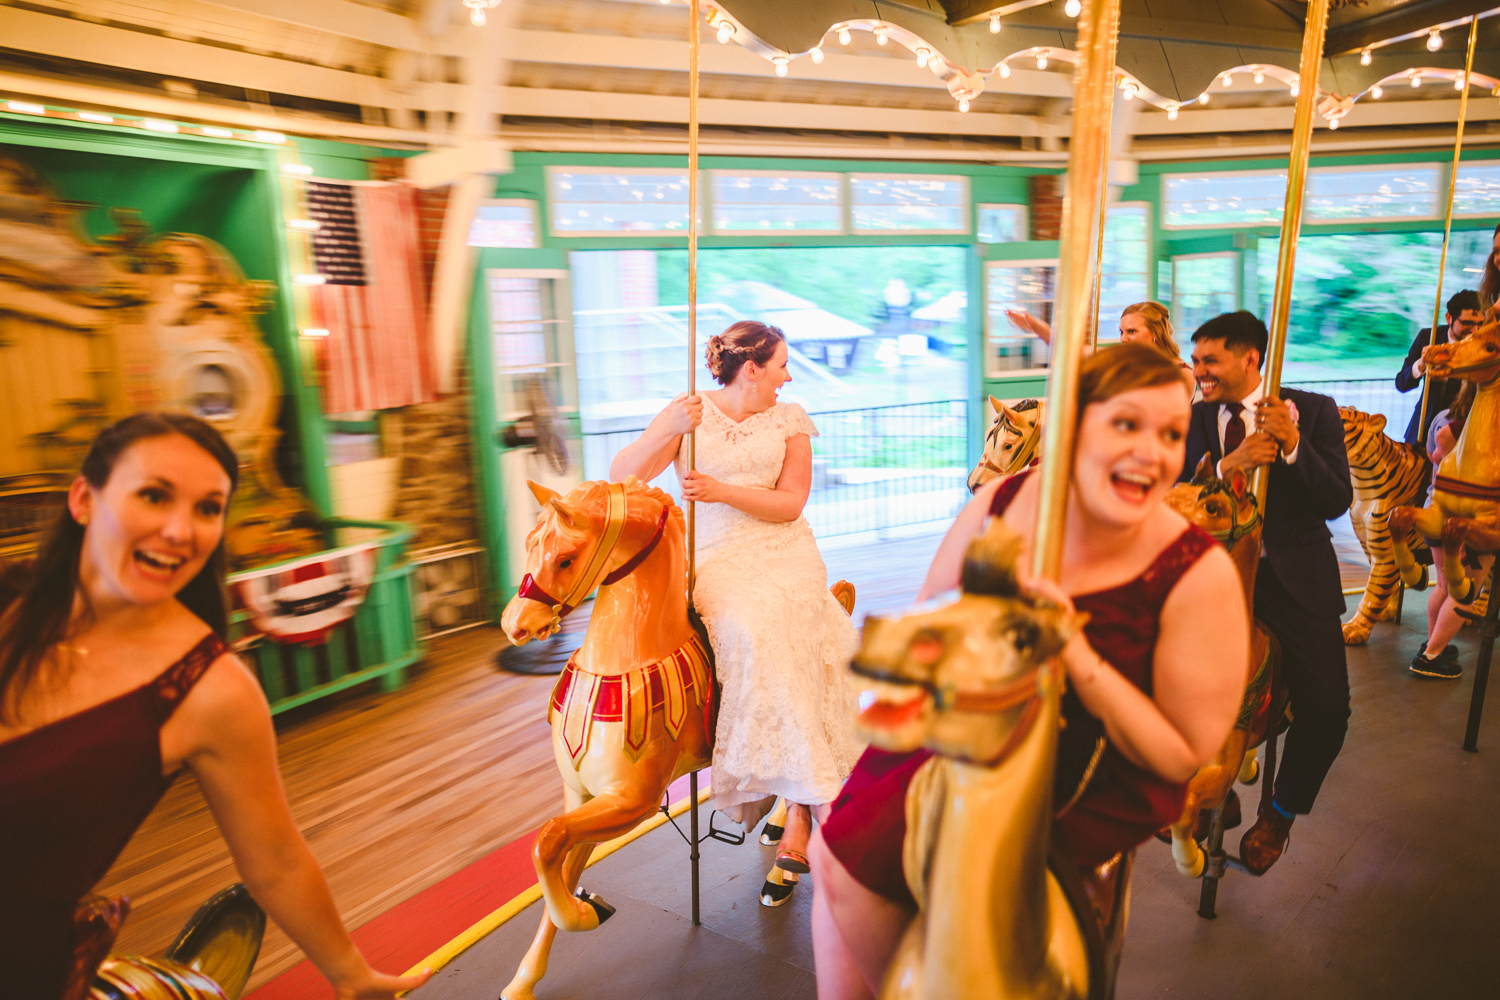 014 - bride and bridesmaids on carousel at glen echo park in maryland.jpg